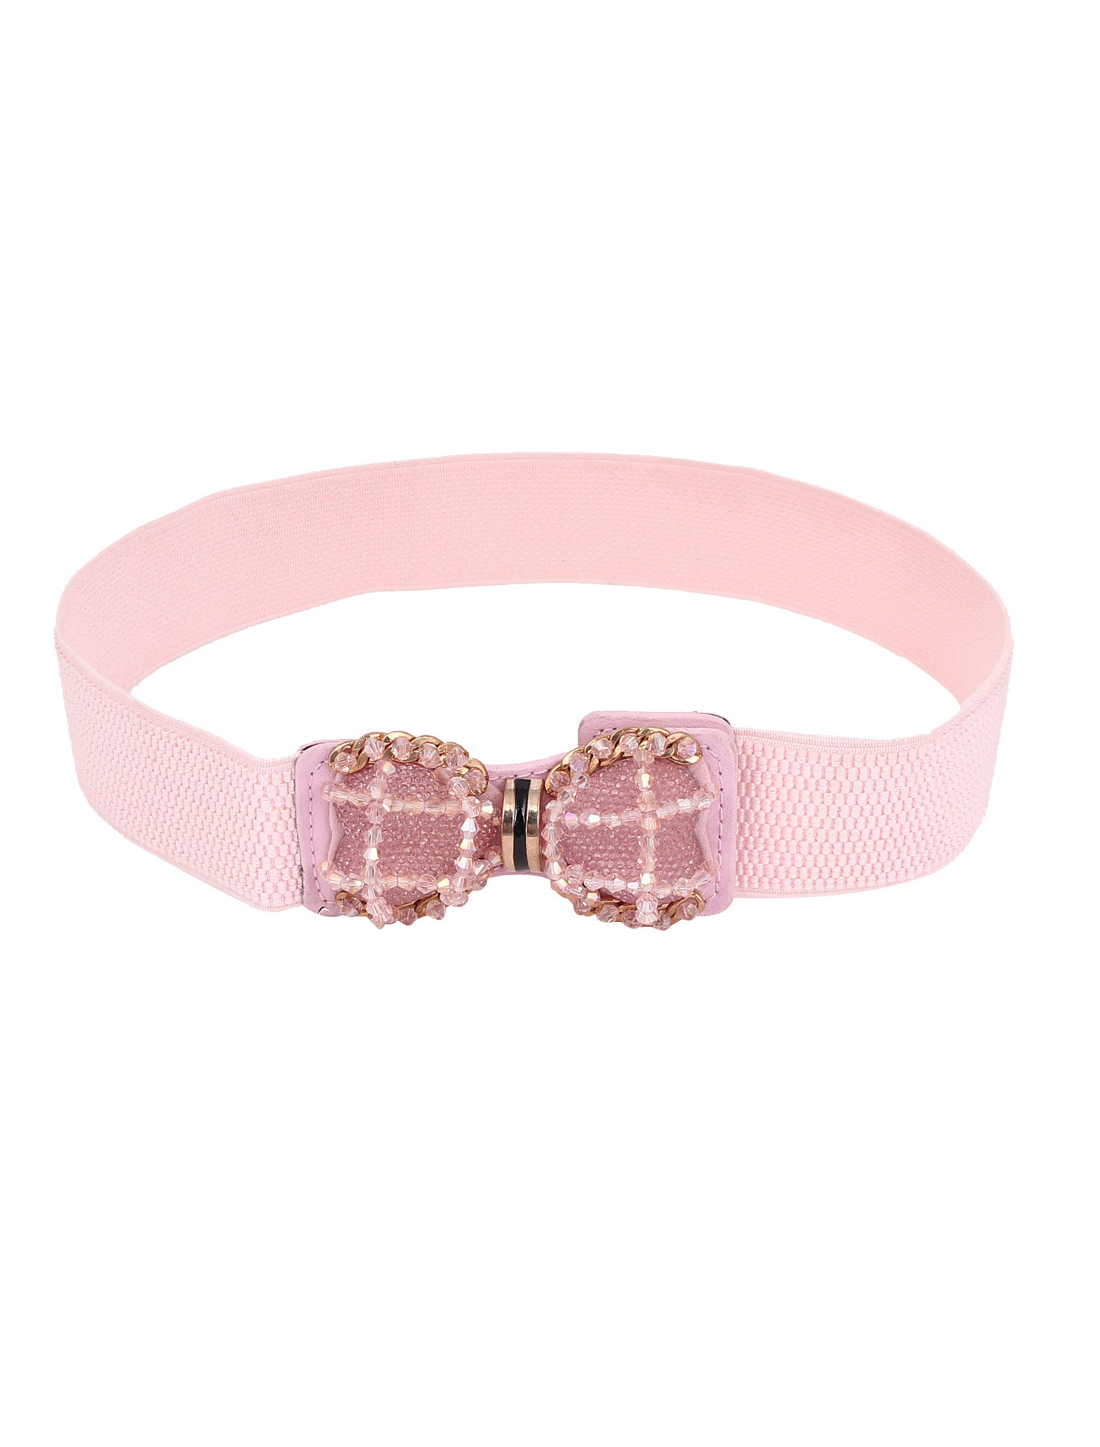 Women Plastic Imitation Pearl Decor Bowknot Design Press Botton Buckle Faux Leather Stretchy Cinch Waist Belt Pink